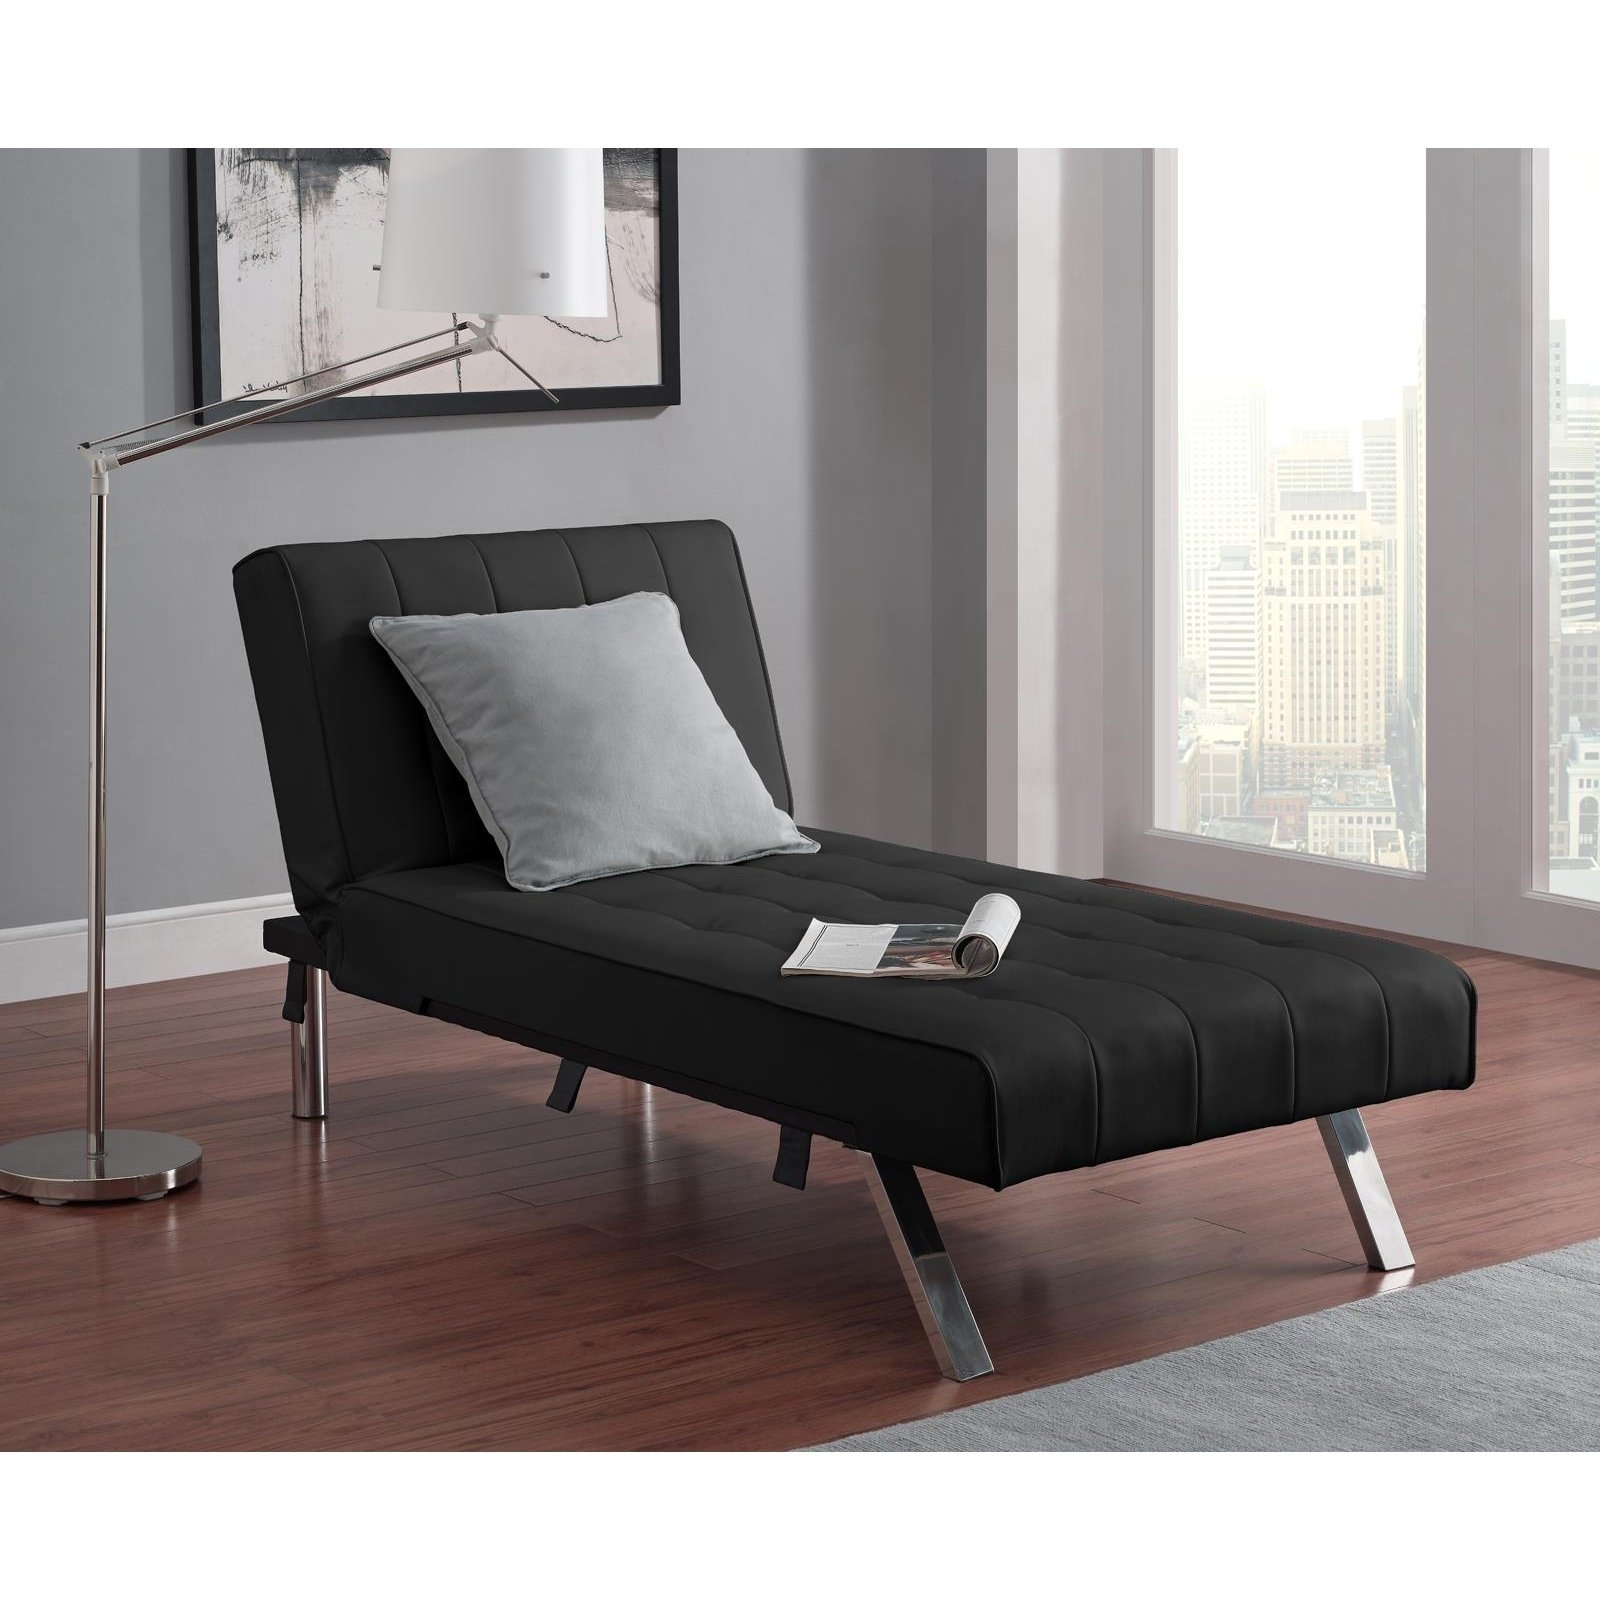 Trendy Dhp Emily Faux Leather Chaise Lounge (View 11 of 15)